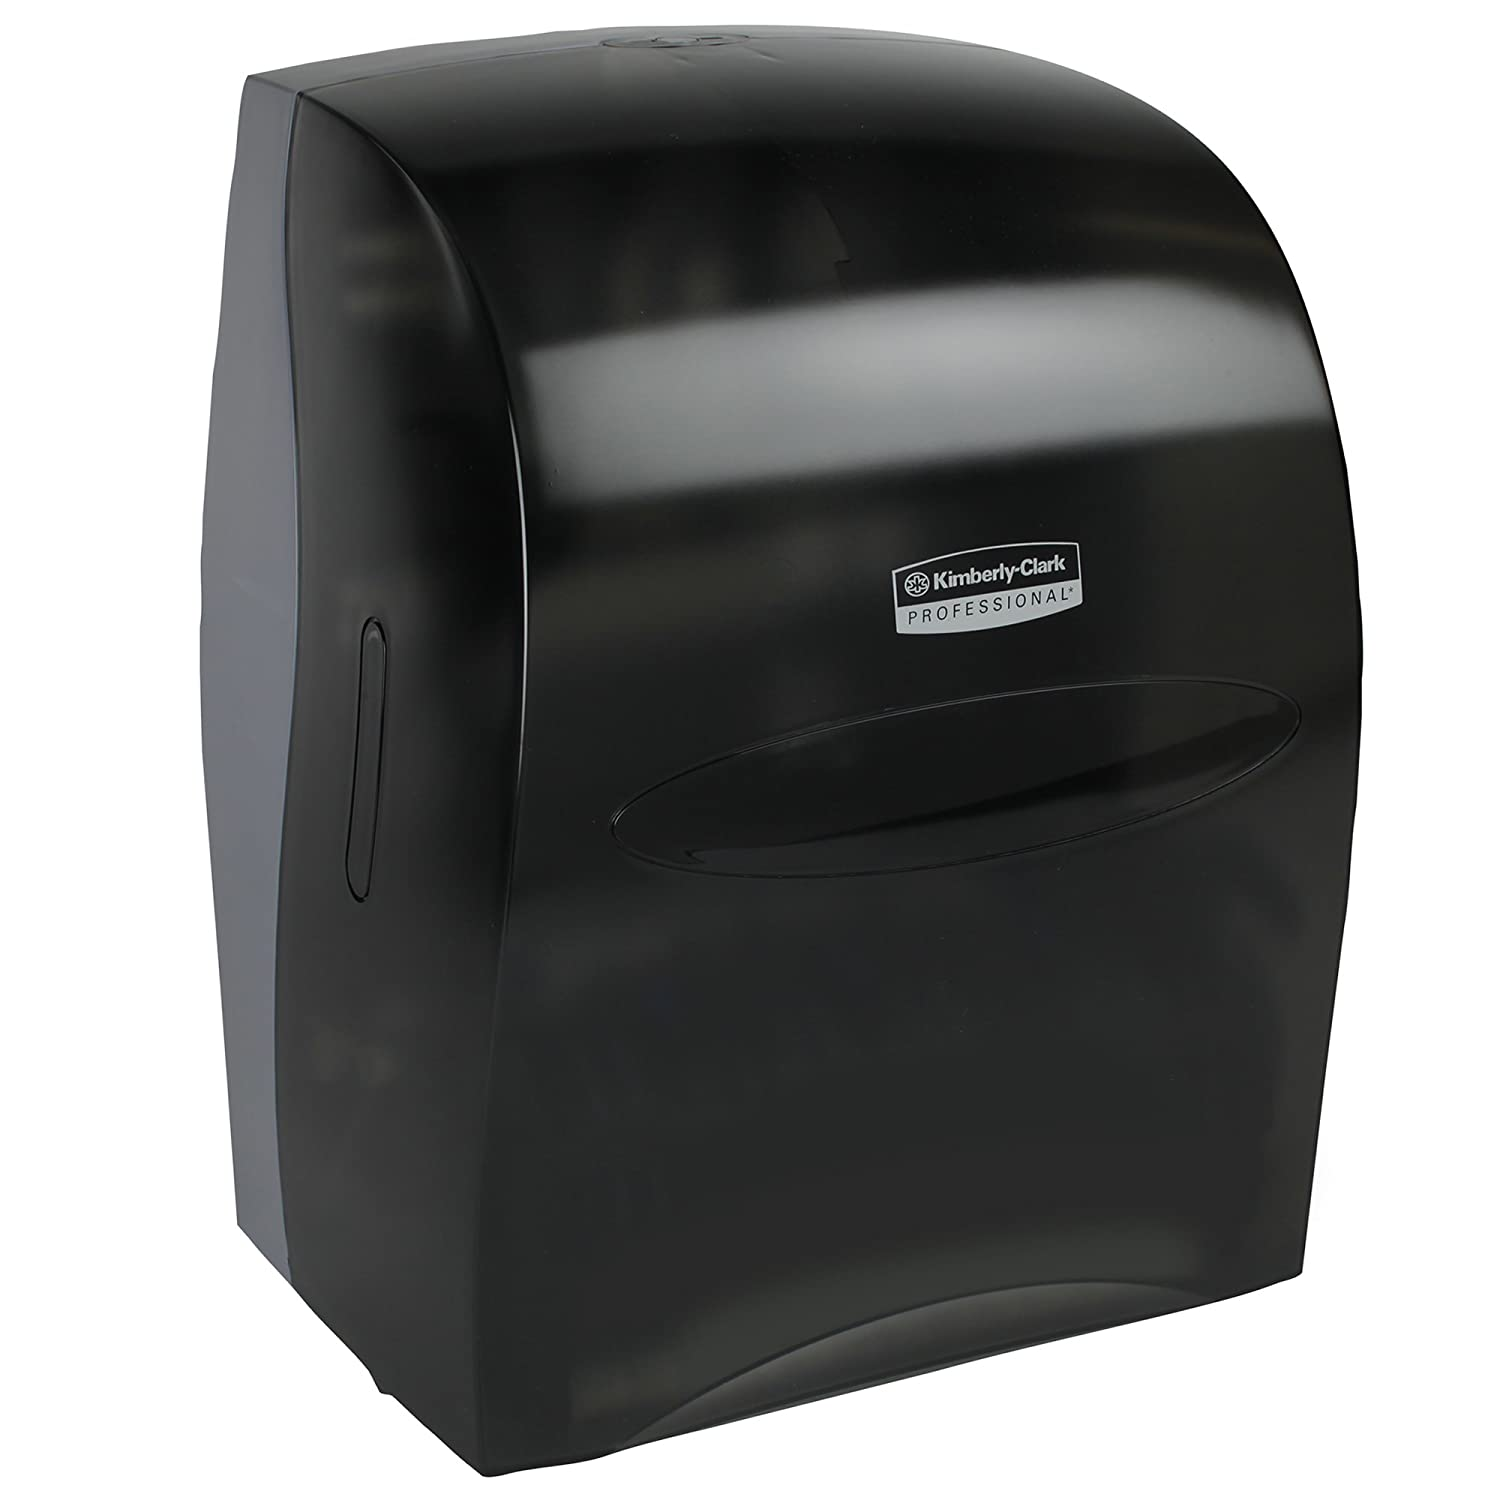 B0006VPX50 Sanitouch Hard Roll Paper Towel Dispenser (09990), Hands-Free Pull Dispensing, Smoke/Black 710liO0f-KL